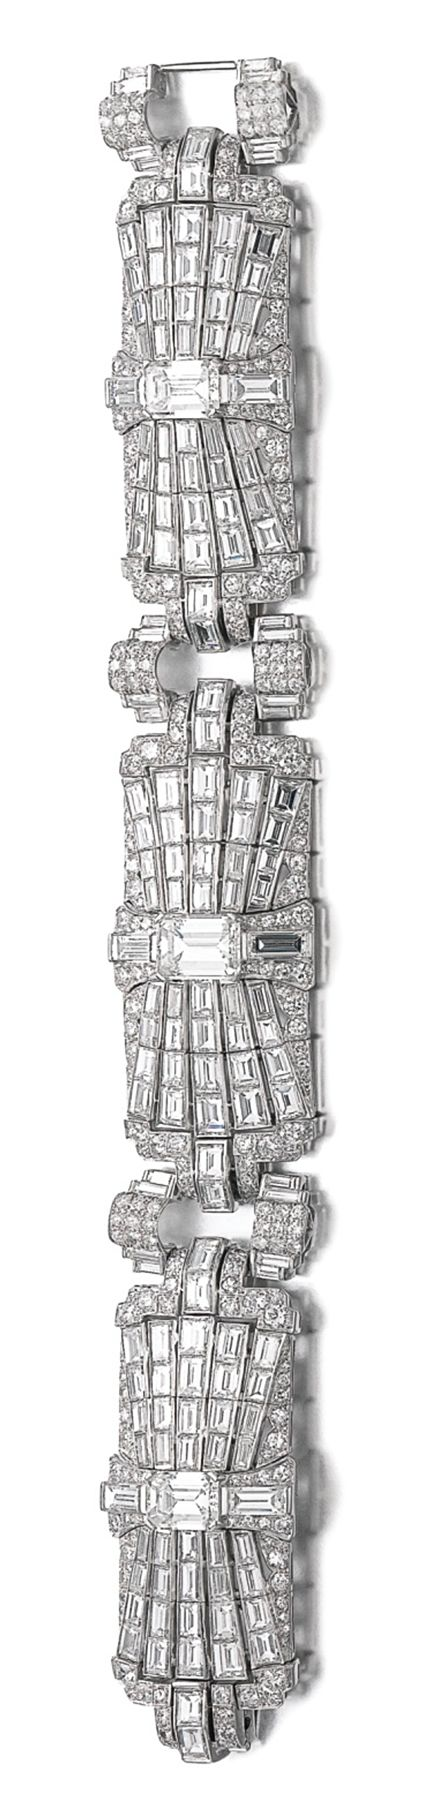 DIAMOND BRACELET Composed of a series of pierced plaques of geometric design, set with step-, brilliant-cut and baguette diamonds, length approximately 170mm. Art Deco or Art Deco style.